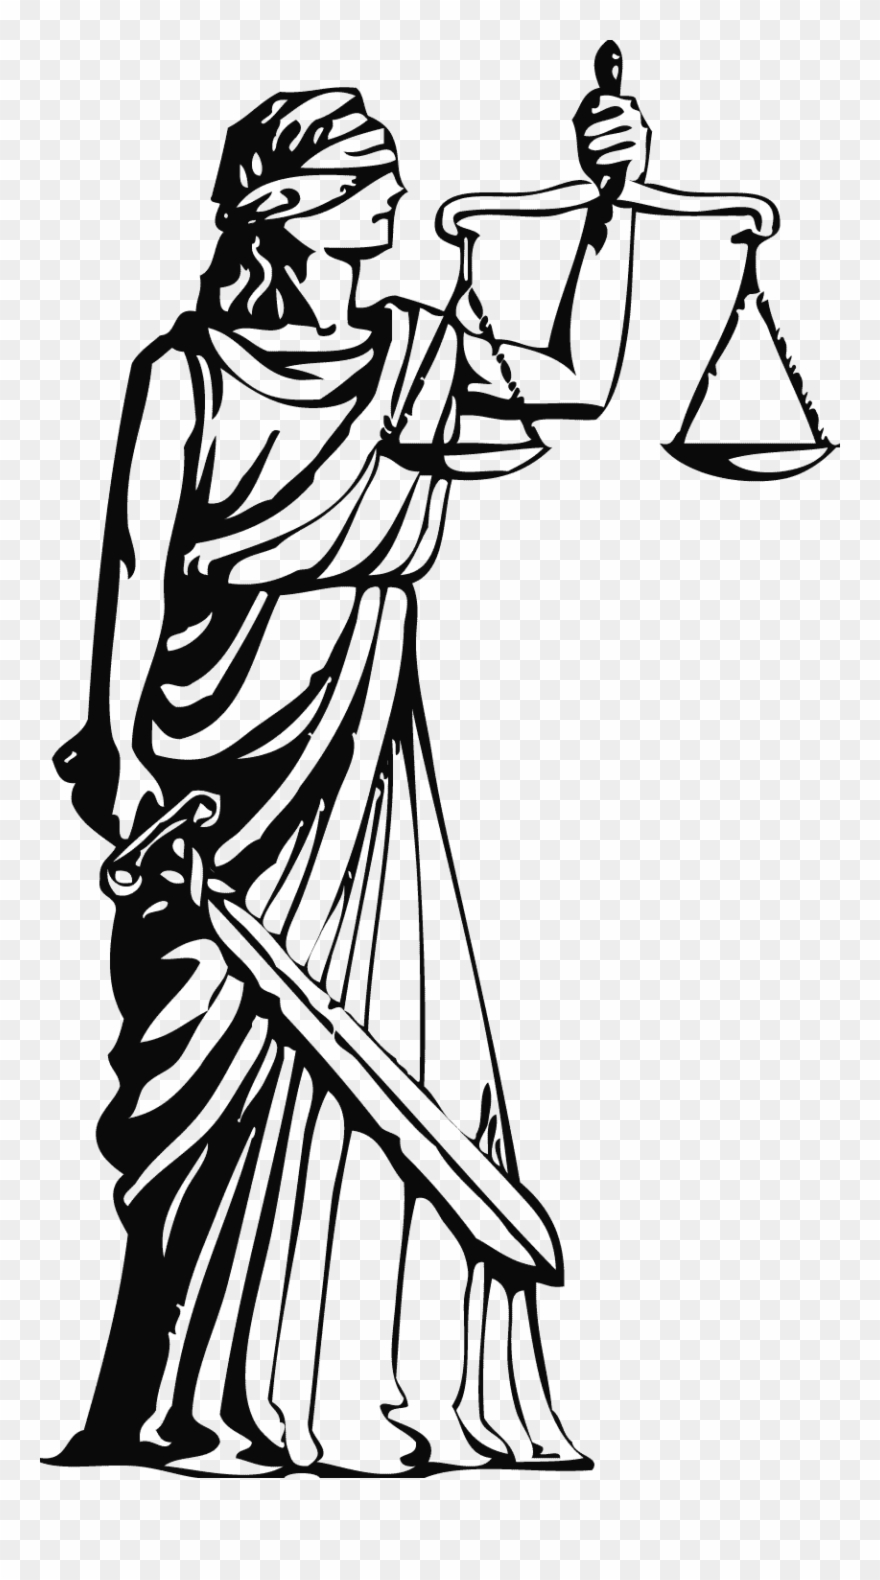 Constitution black and white. Justice clipart constitutional law